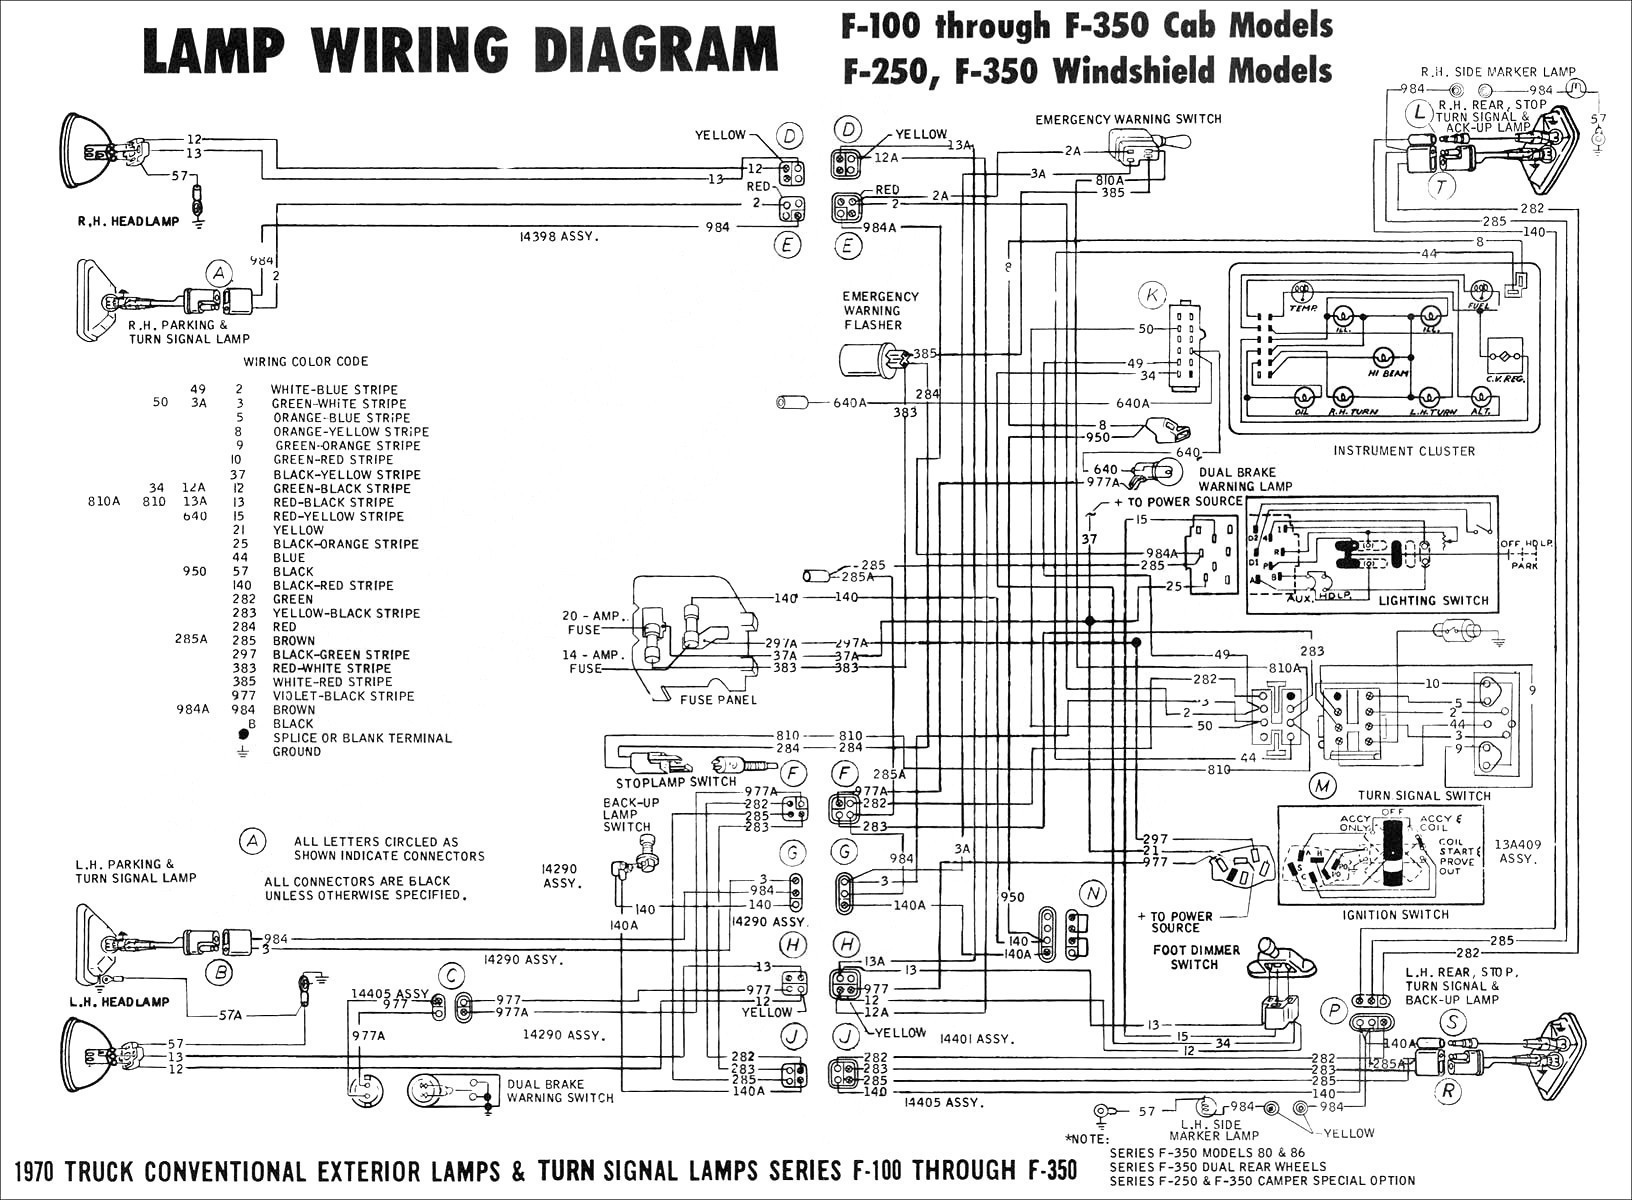 Fl350 Wiring Diagram Diagrams Pull Start Engine 1950 Studebaker Champion Library Rh 100 Codingcommunity De 670